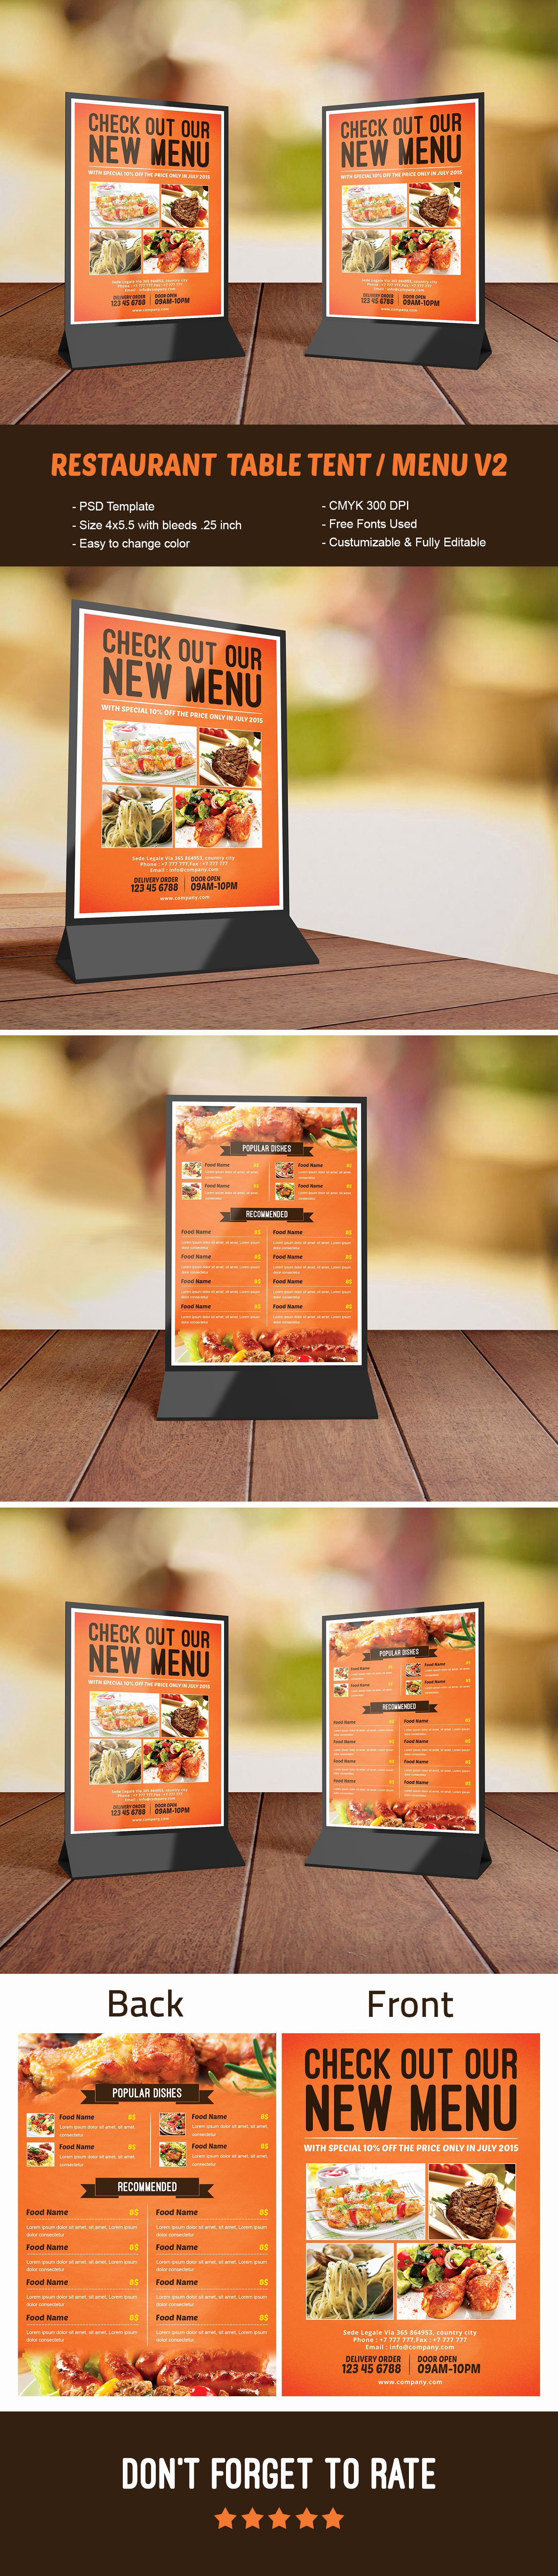 Restaurant Table Tent Template Lovely Restaurant Table Tent Menu V2 Template On Behance